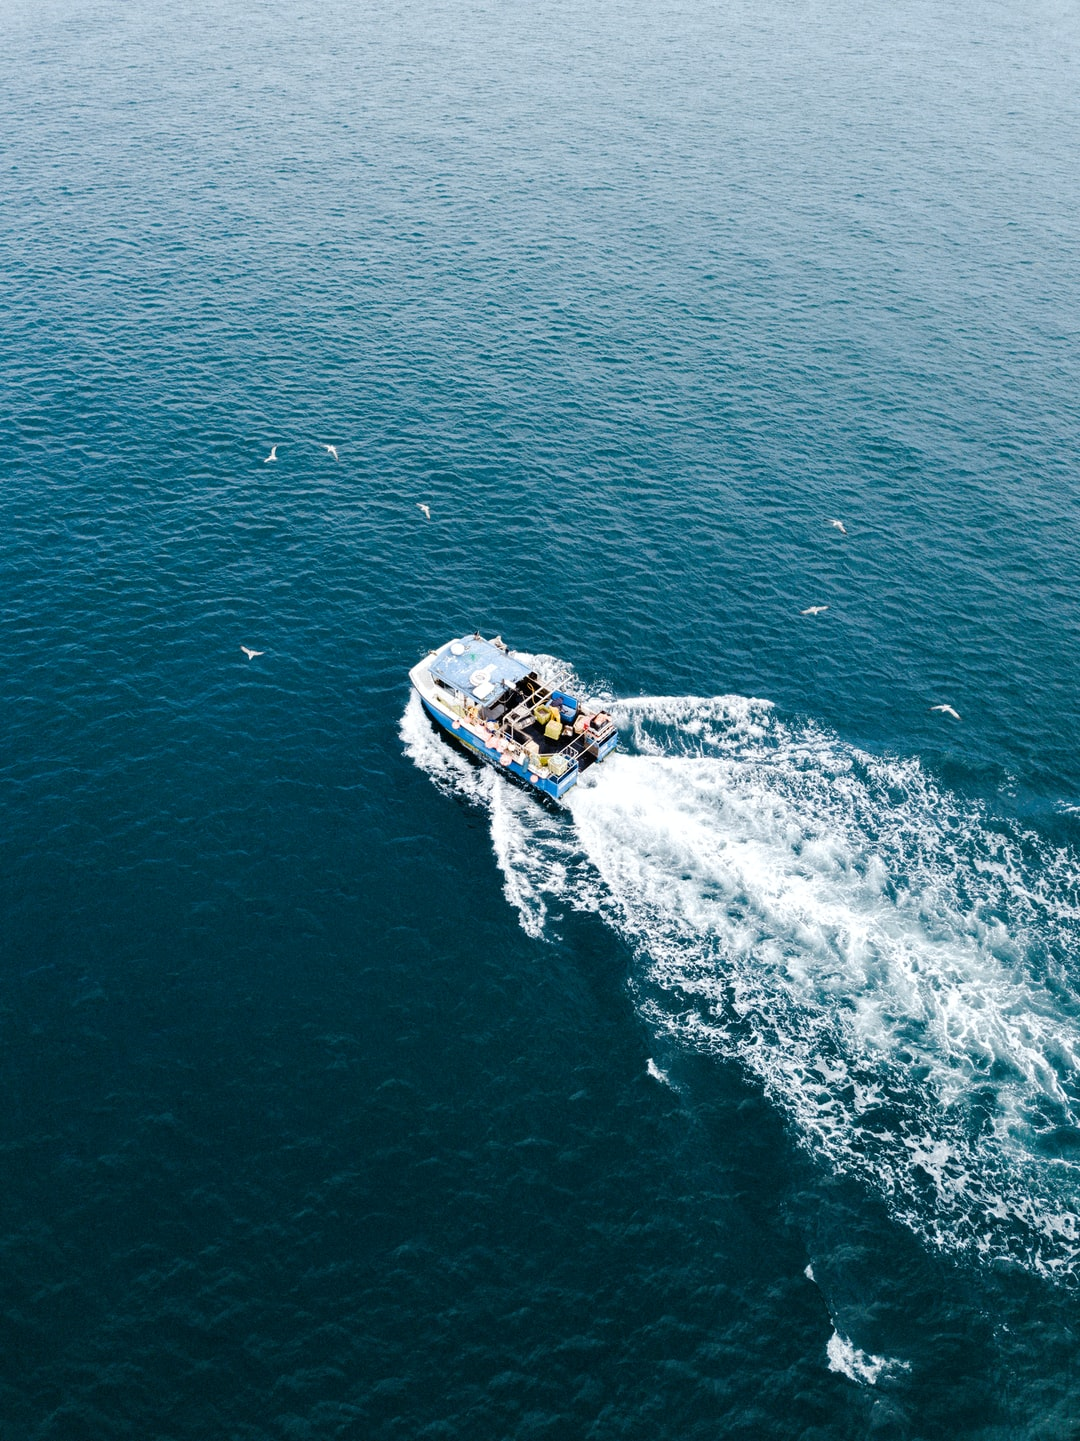 A Fishermans boat in the English Channel.